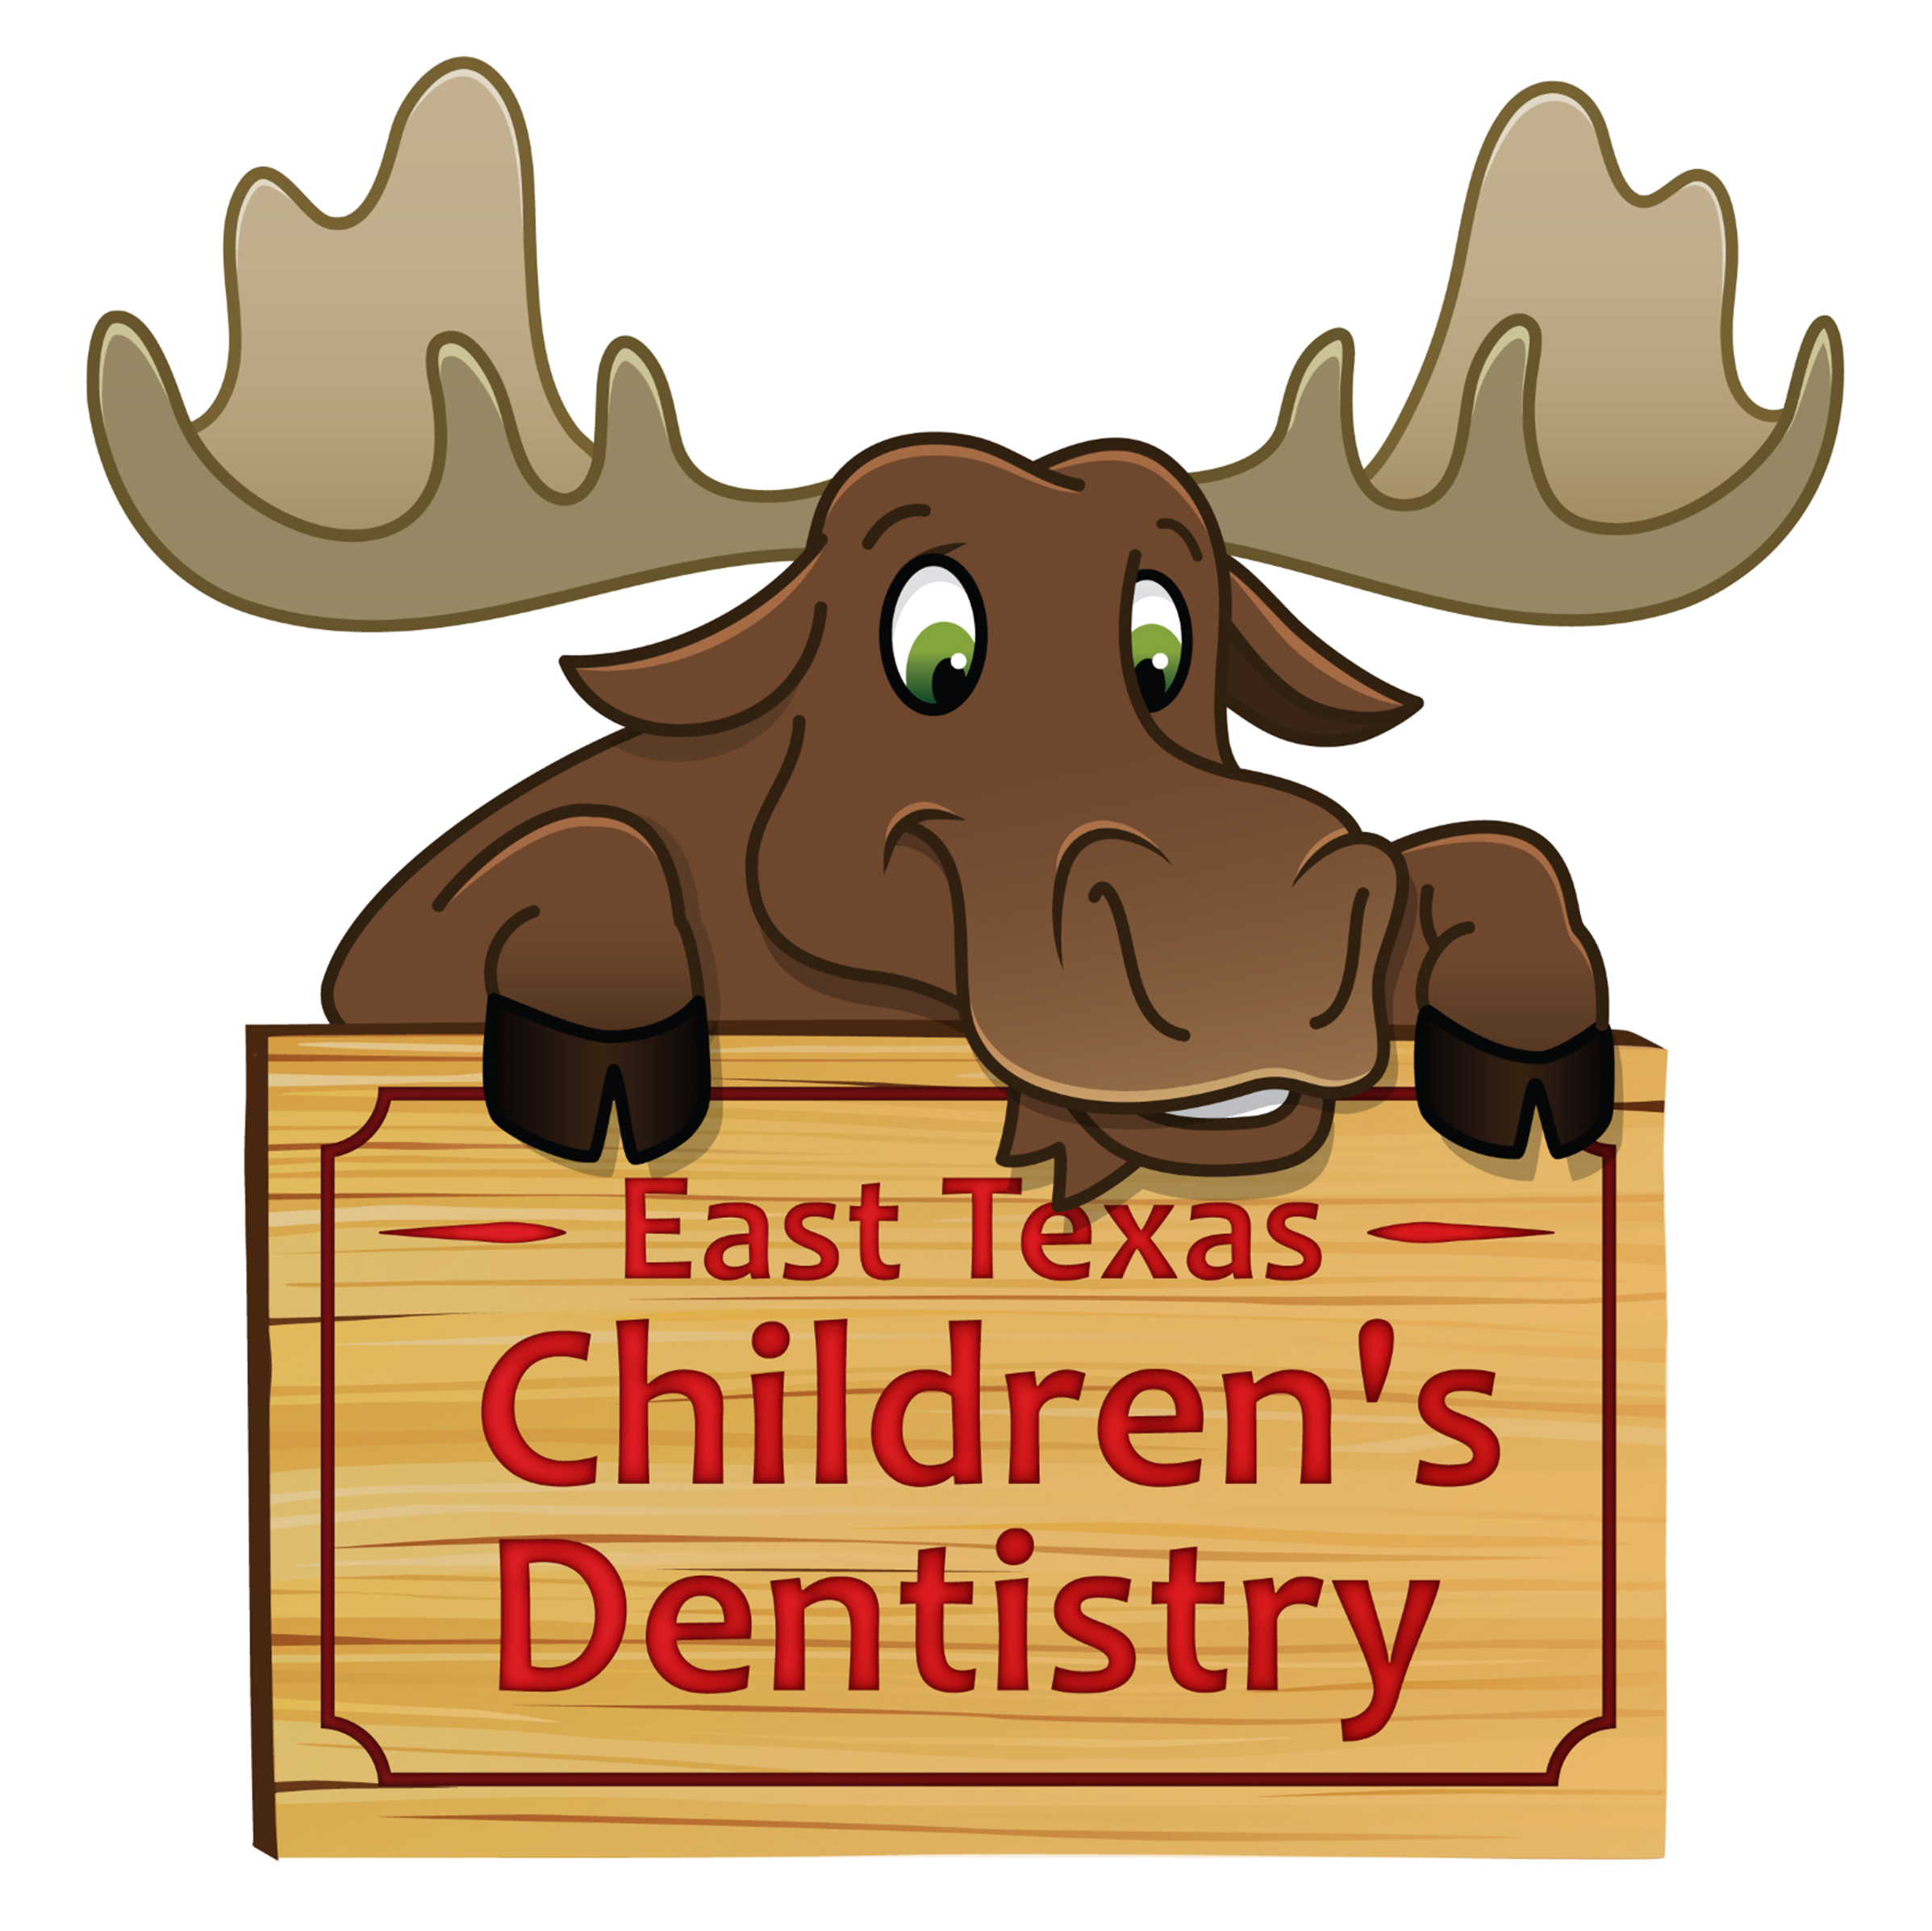 East Texas Childrens dentistry 2